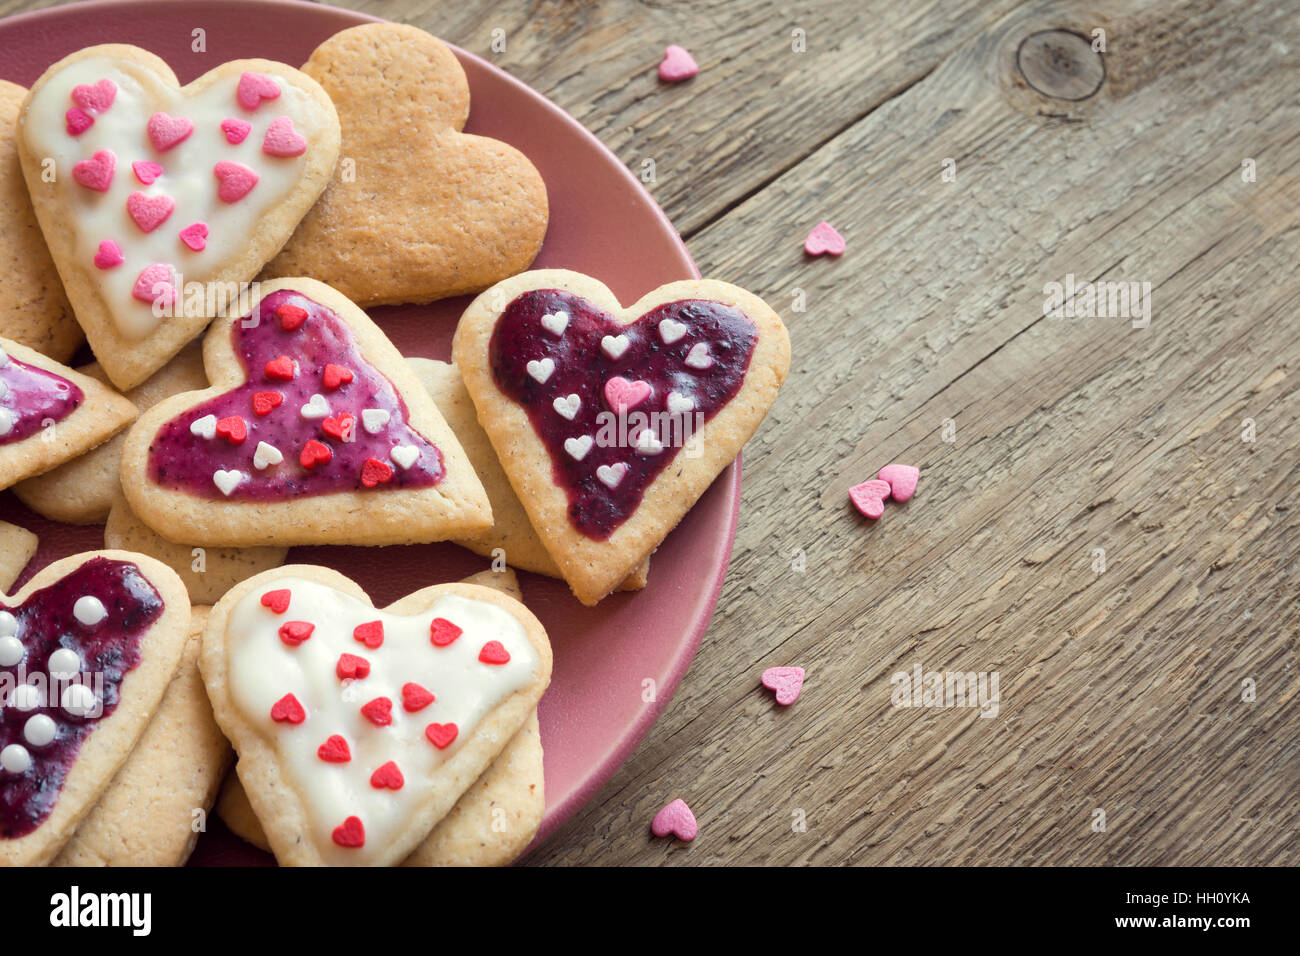 Glazed heart shaped cookies for Valentine's day - delicious homemade natural organic pastry, baking with love - Stock Image